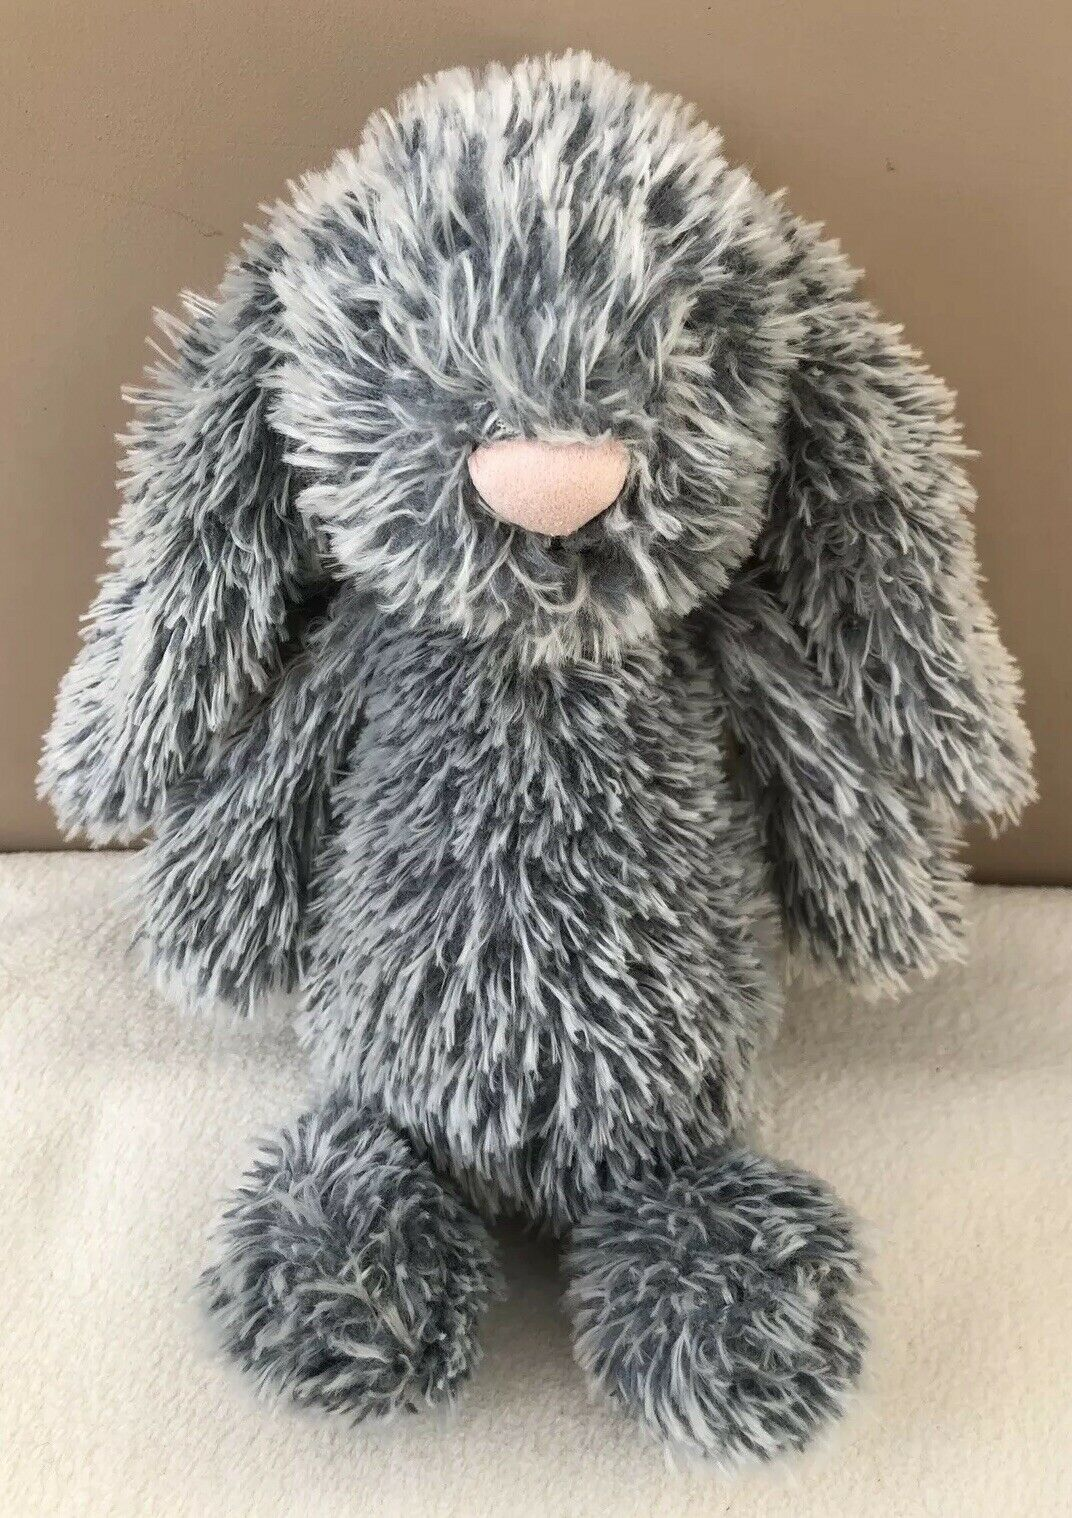 Jellycat Special Limited Edition Lexie Bashful Bunny Rabbit Soft Toy Collectable